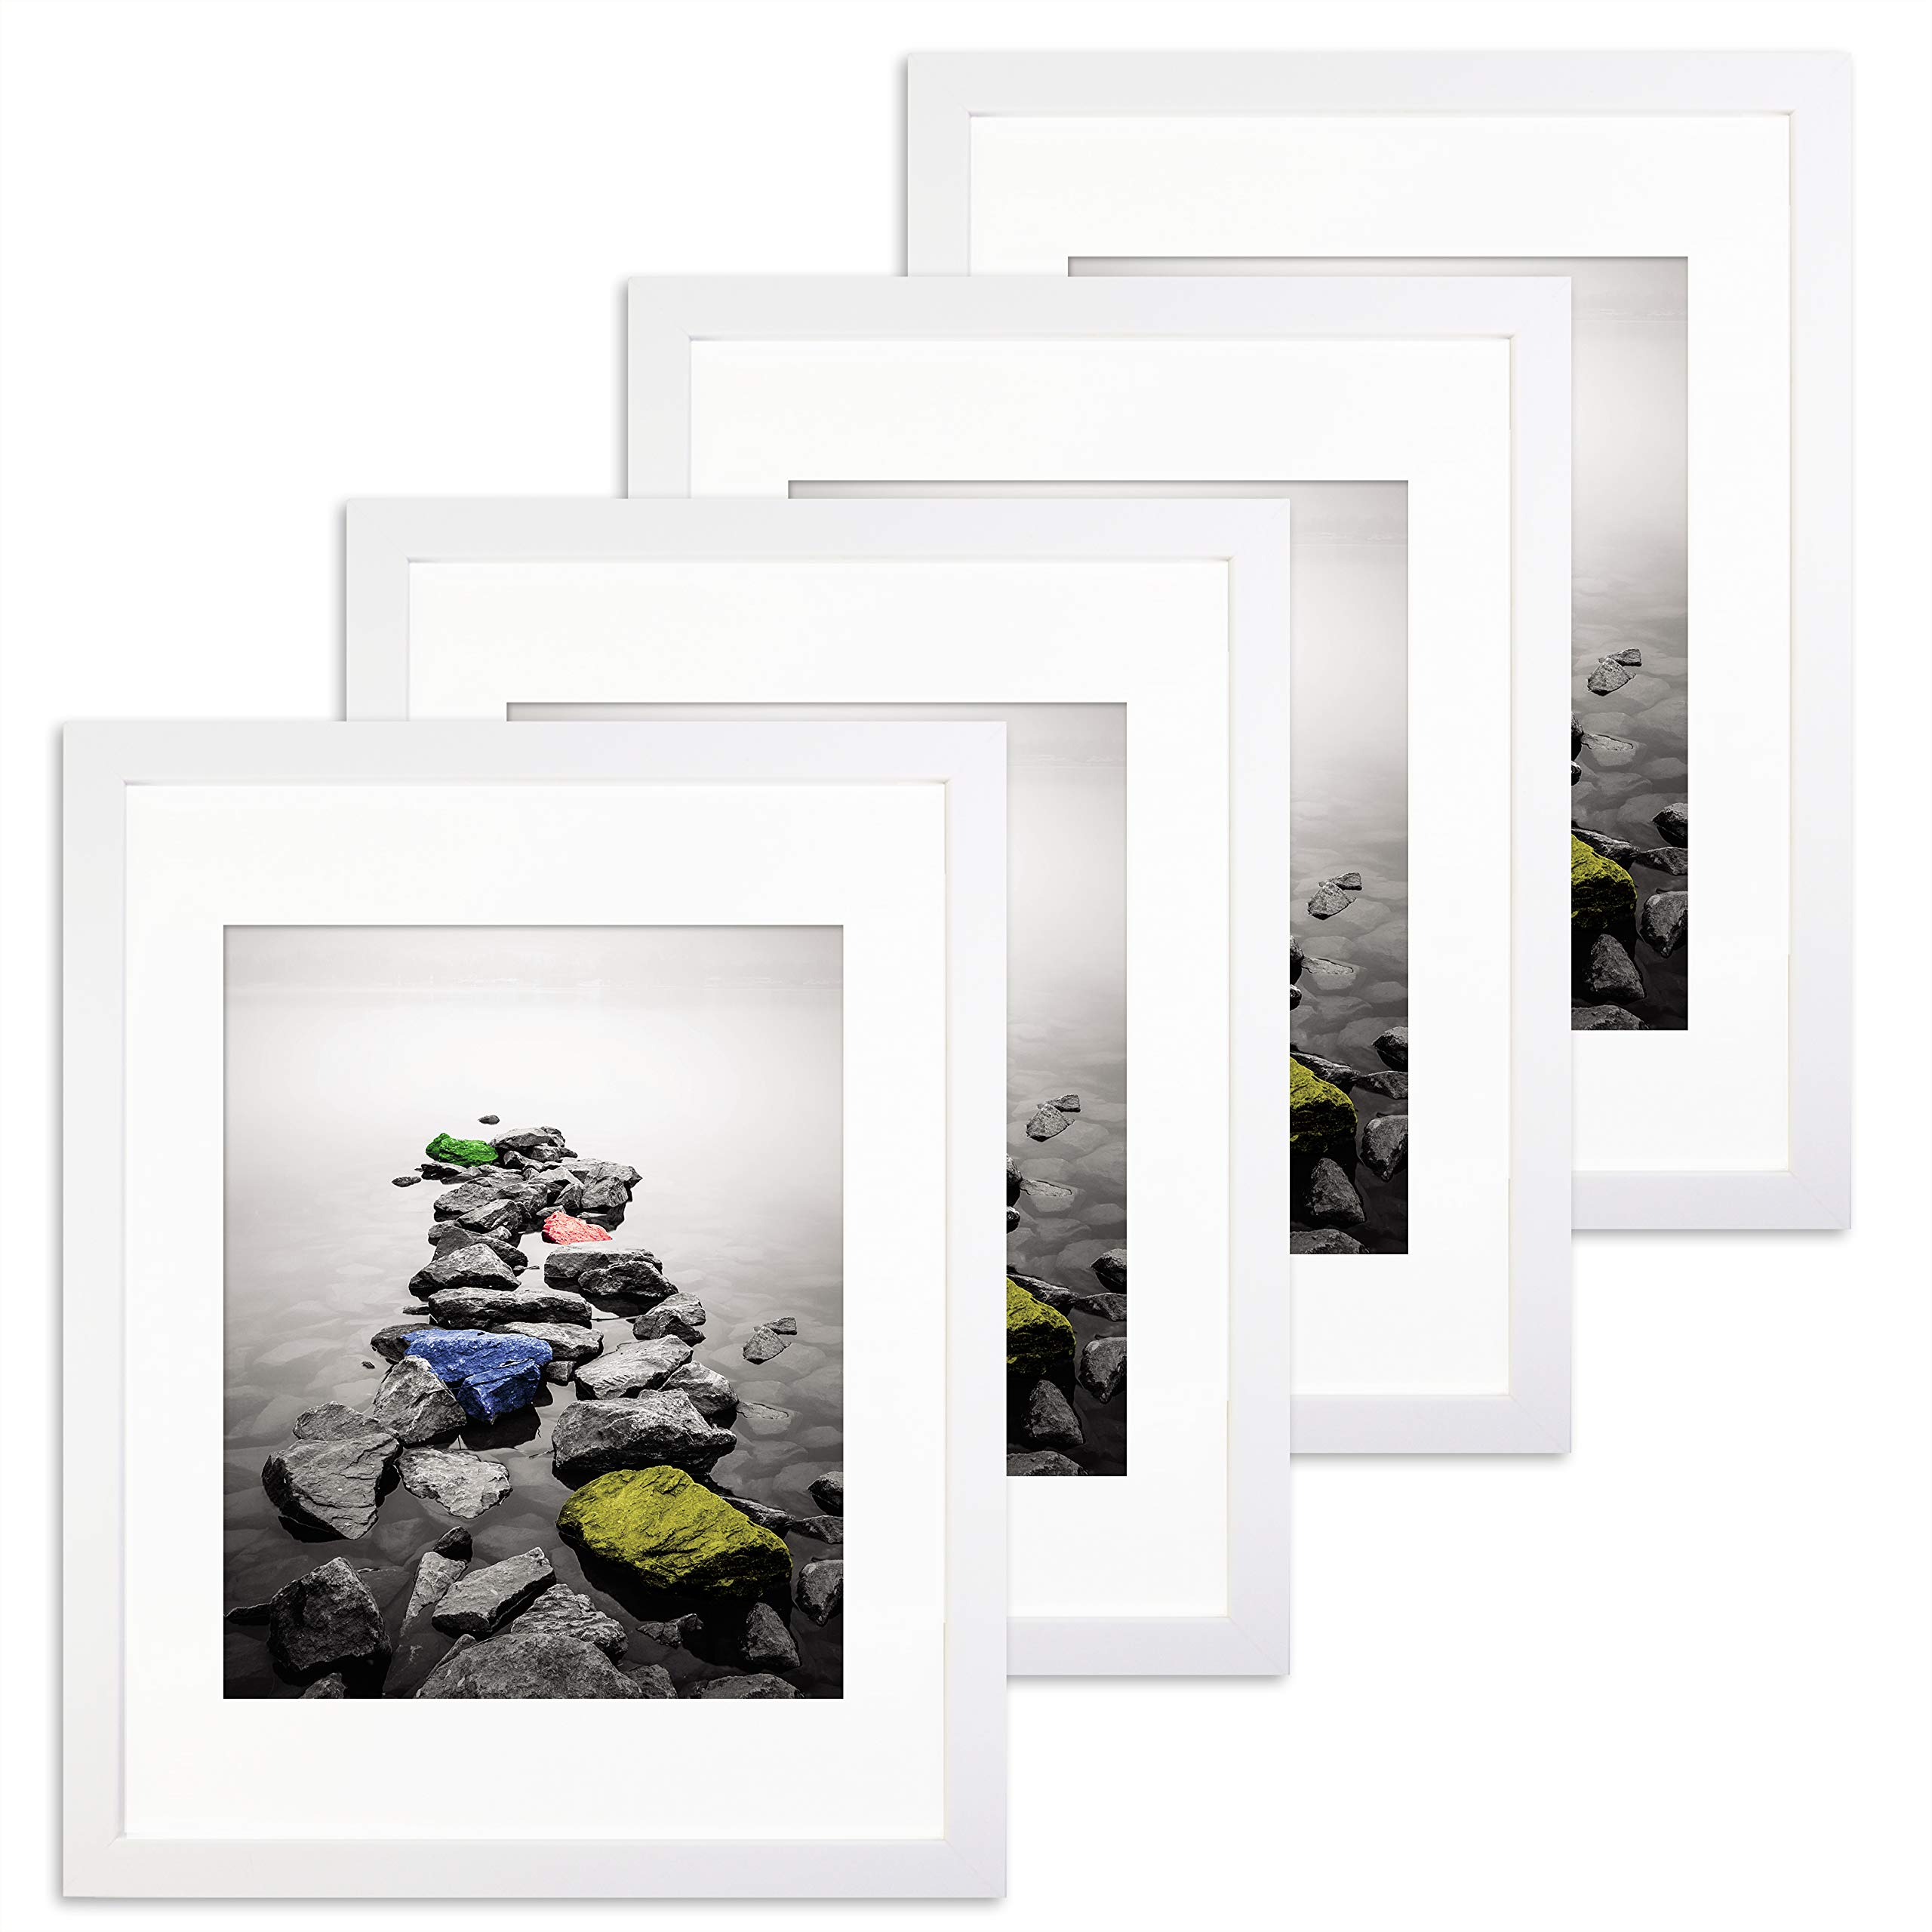 Superdecor 11x14 White Picture Frame 4 Pack - Made to Display Pictures 8x10 with Mat or 11x14 Without Mat - Decorative Poster Frame Wall and Tabletop Display - Pre-Installed Wall Mounting Hardware